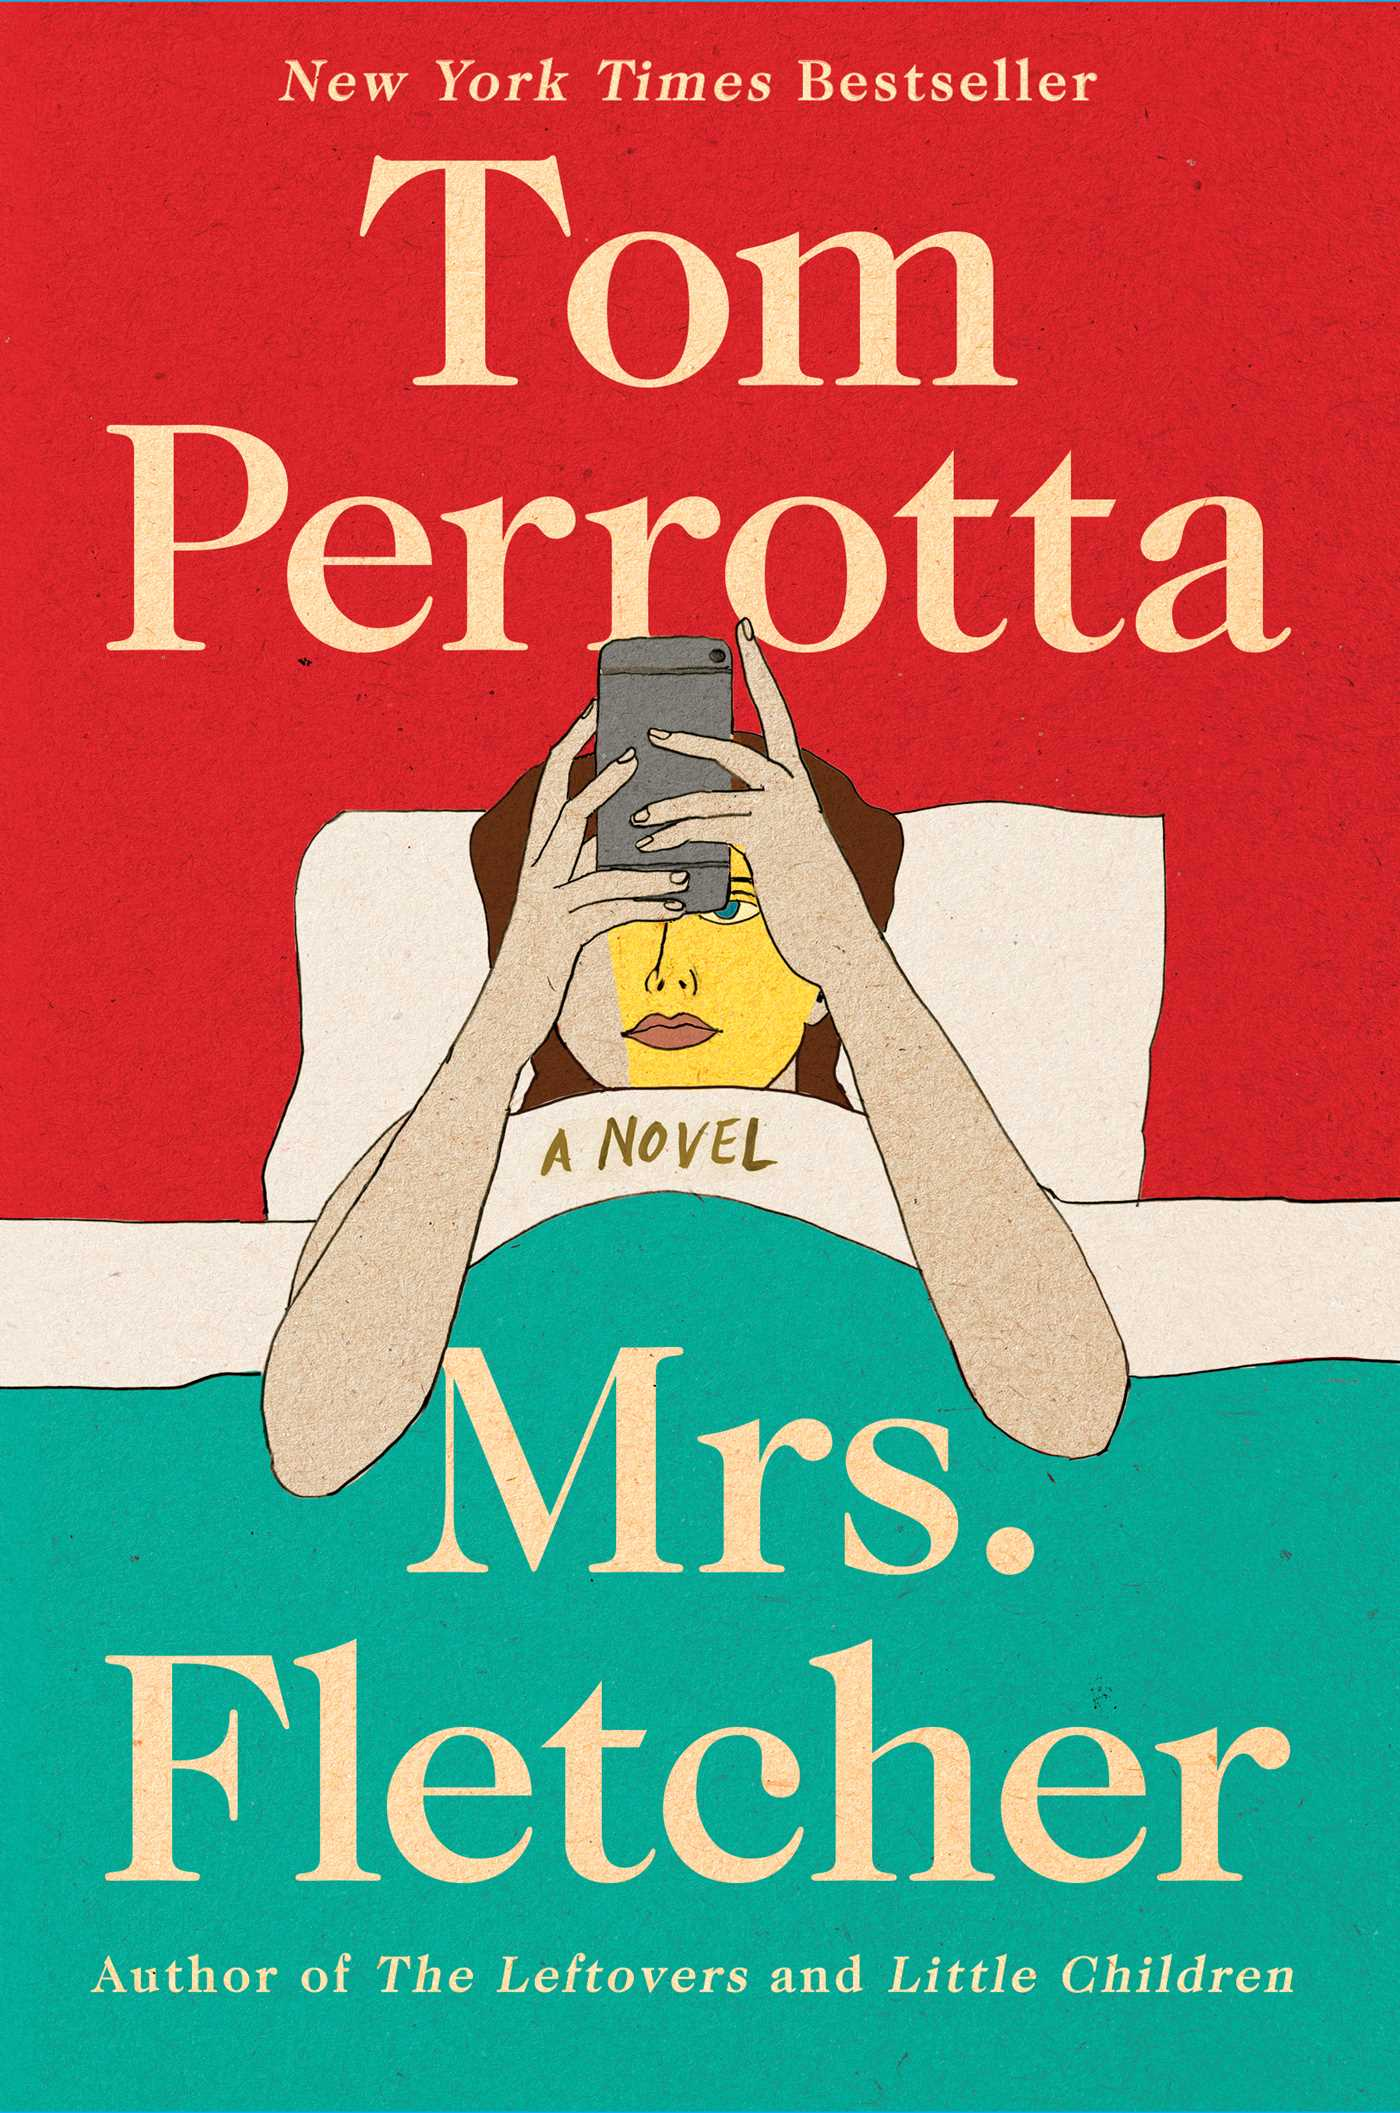 Mrs Fletcher By Tom Perrotta